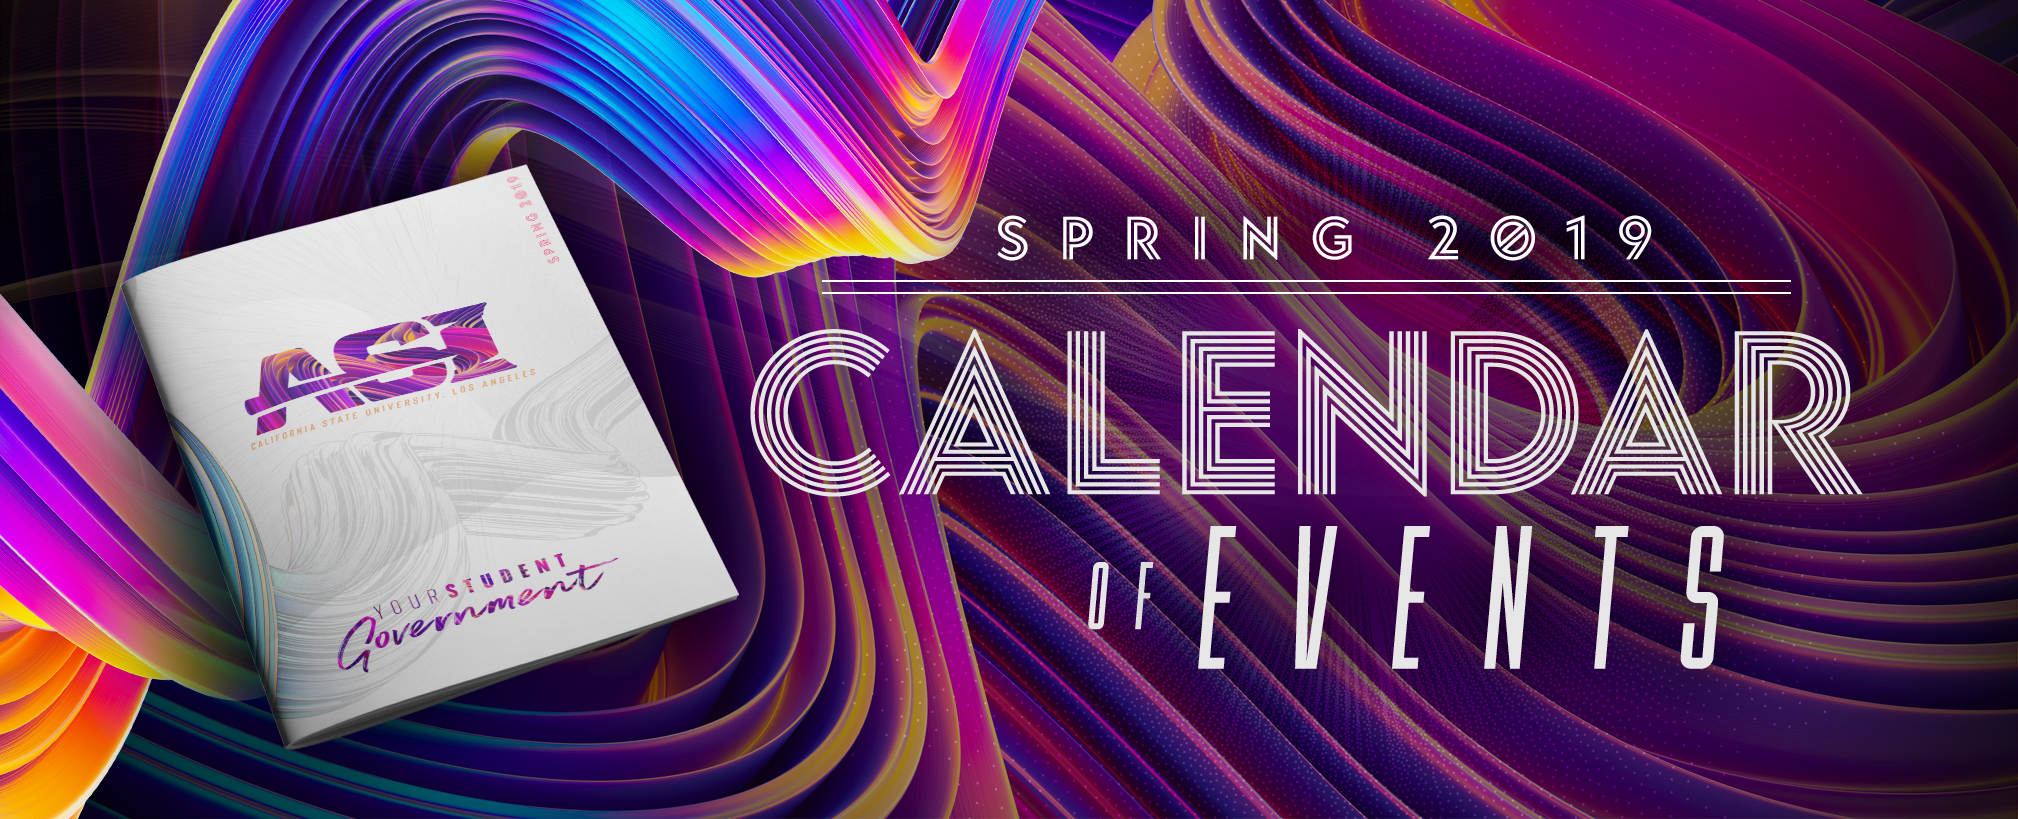 ASI Spring 2019 Calendar or Events